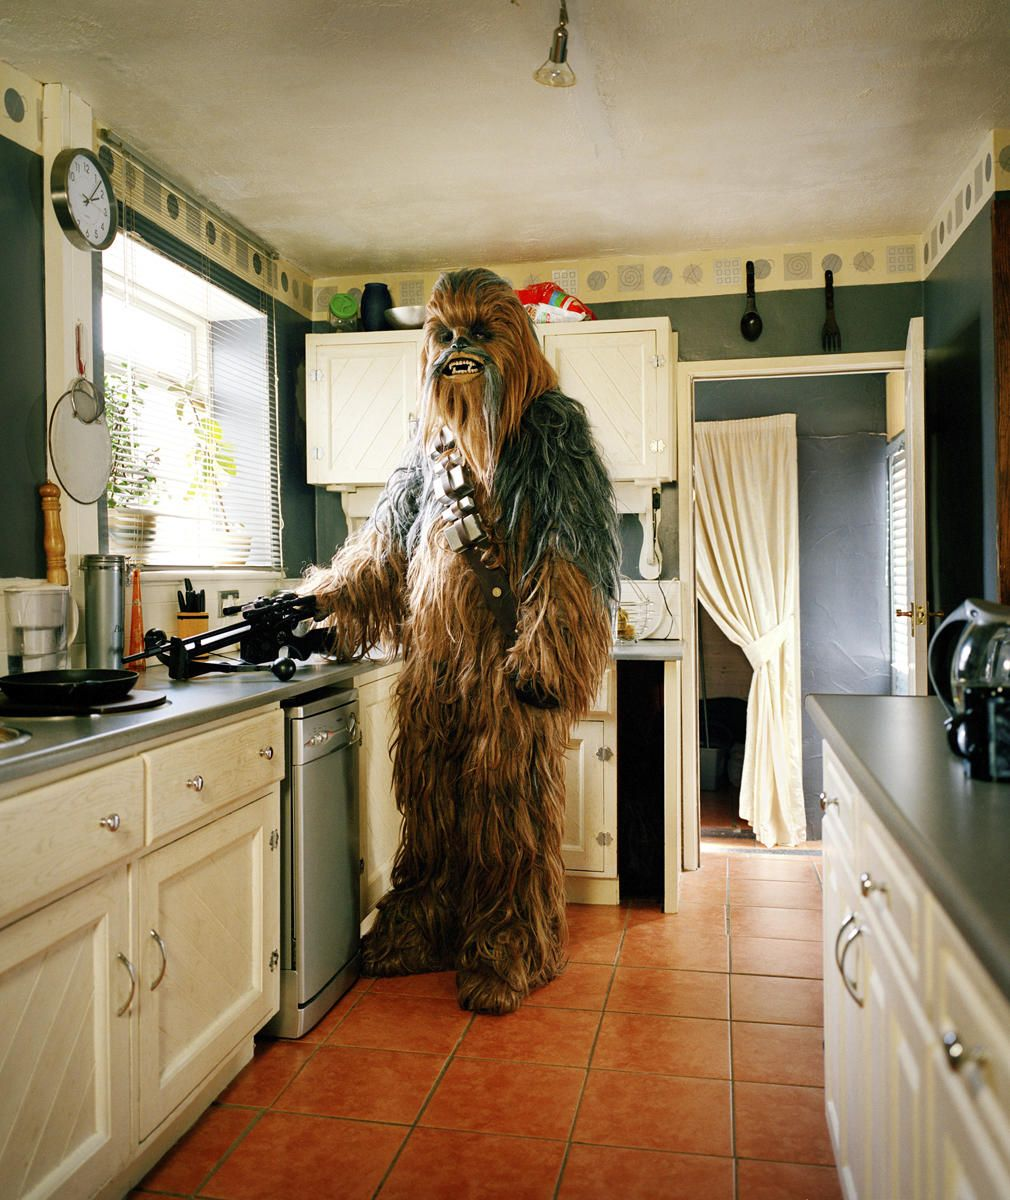 Young woman washing dishes in kitchen by andersen ross photography for - Chewbacca In The Kitchen With His Bowcaster Getting Something To Eat Photographer Steve